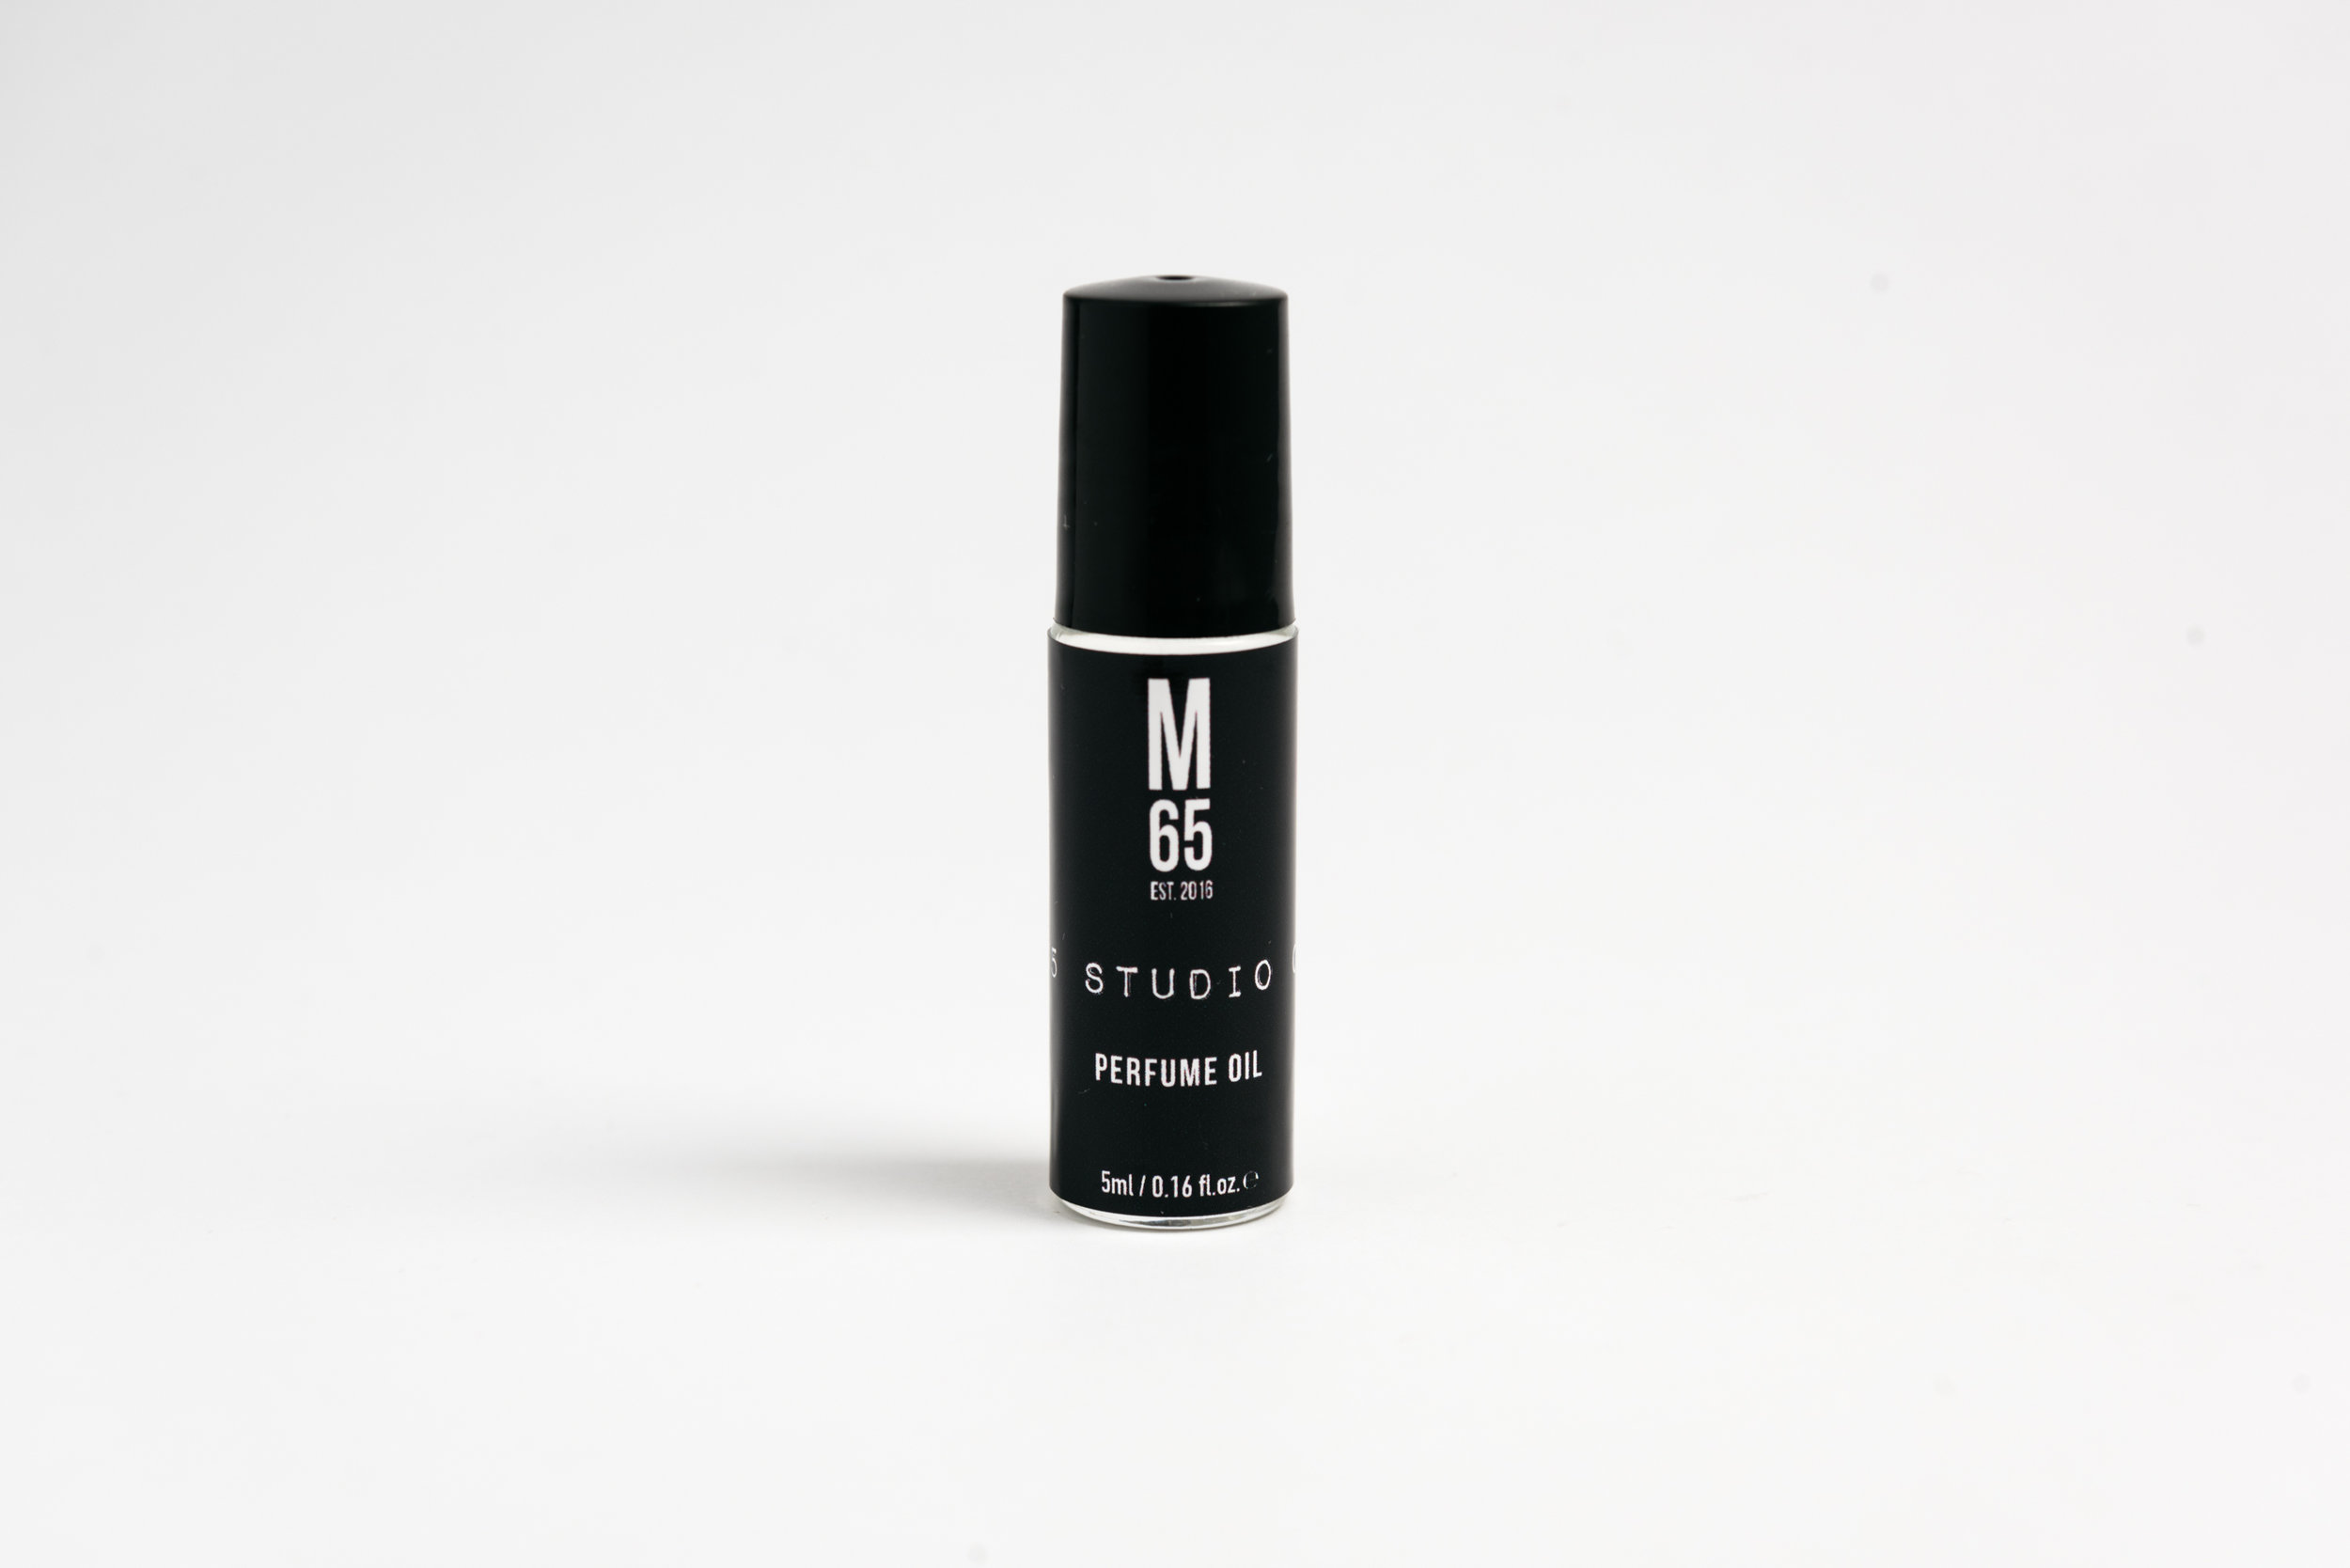 Parfum from M65Studio